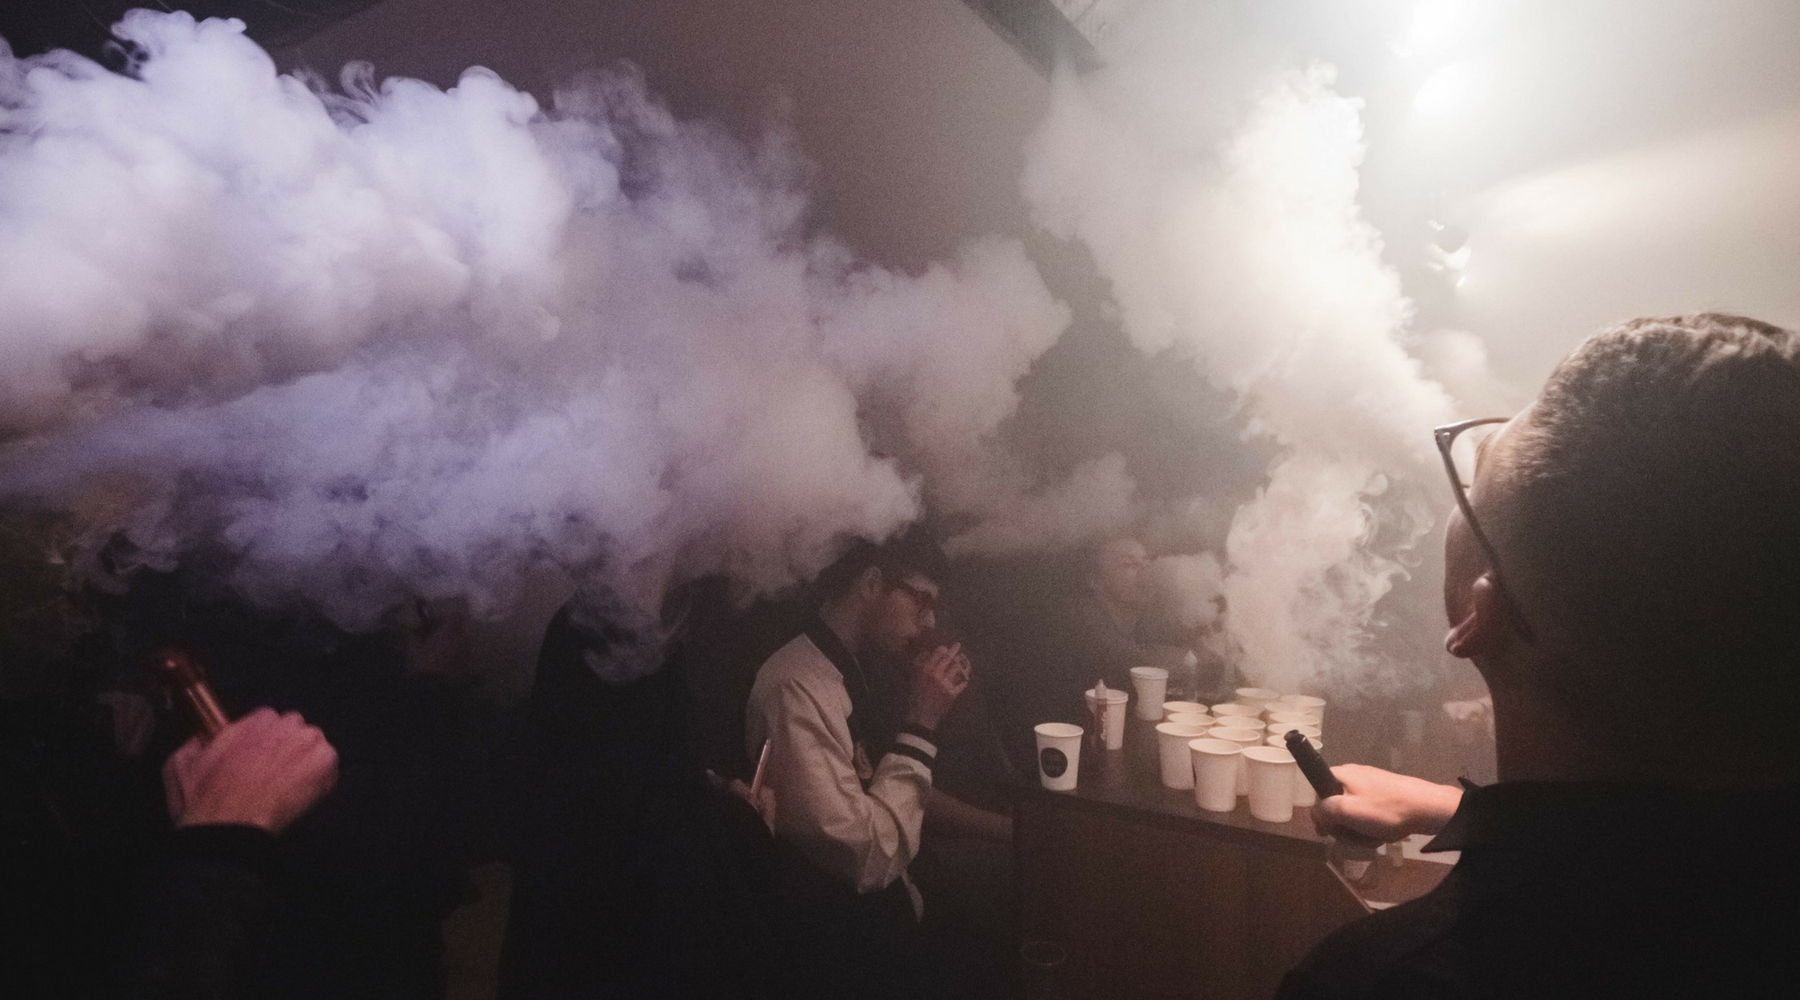 Vape Shop in Ipswich, UK